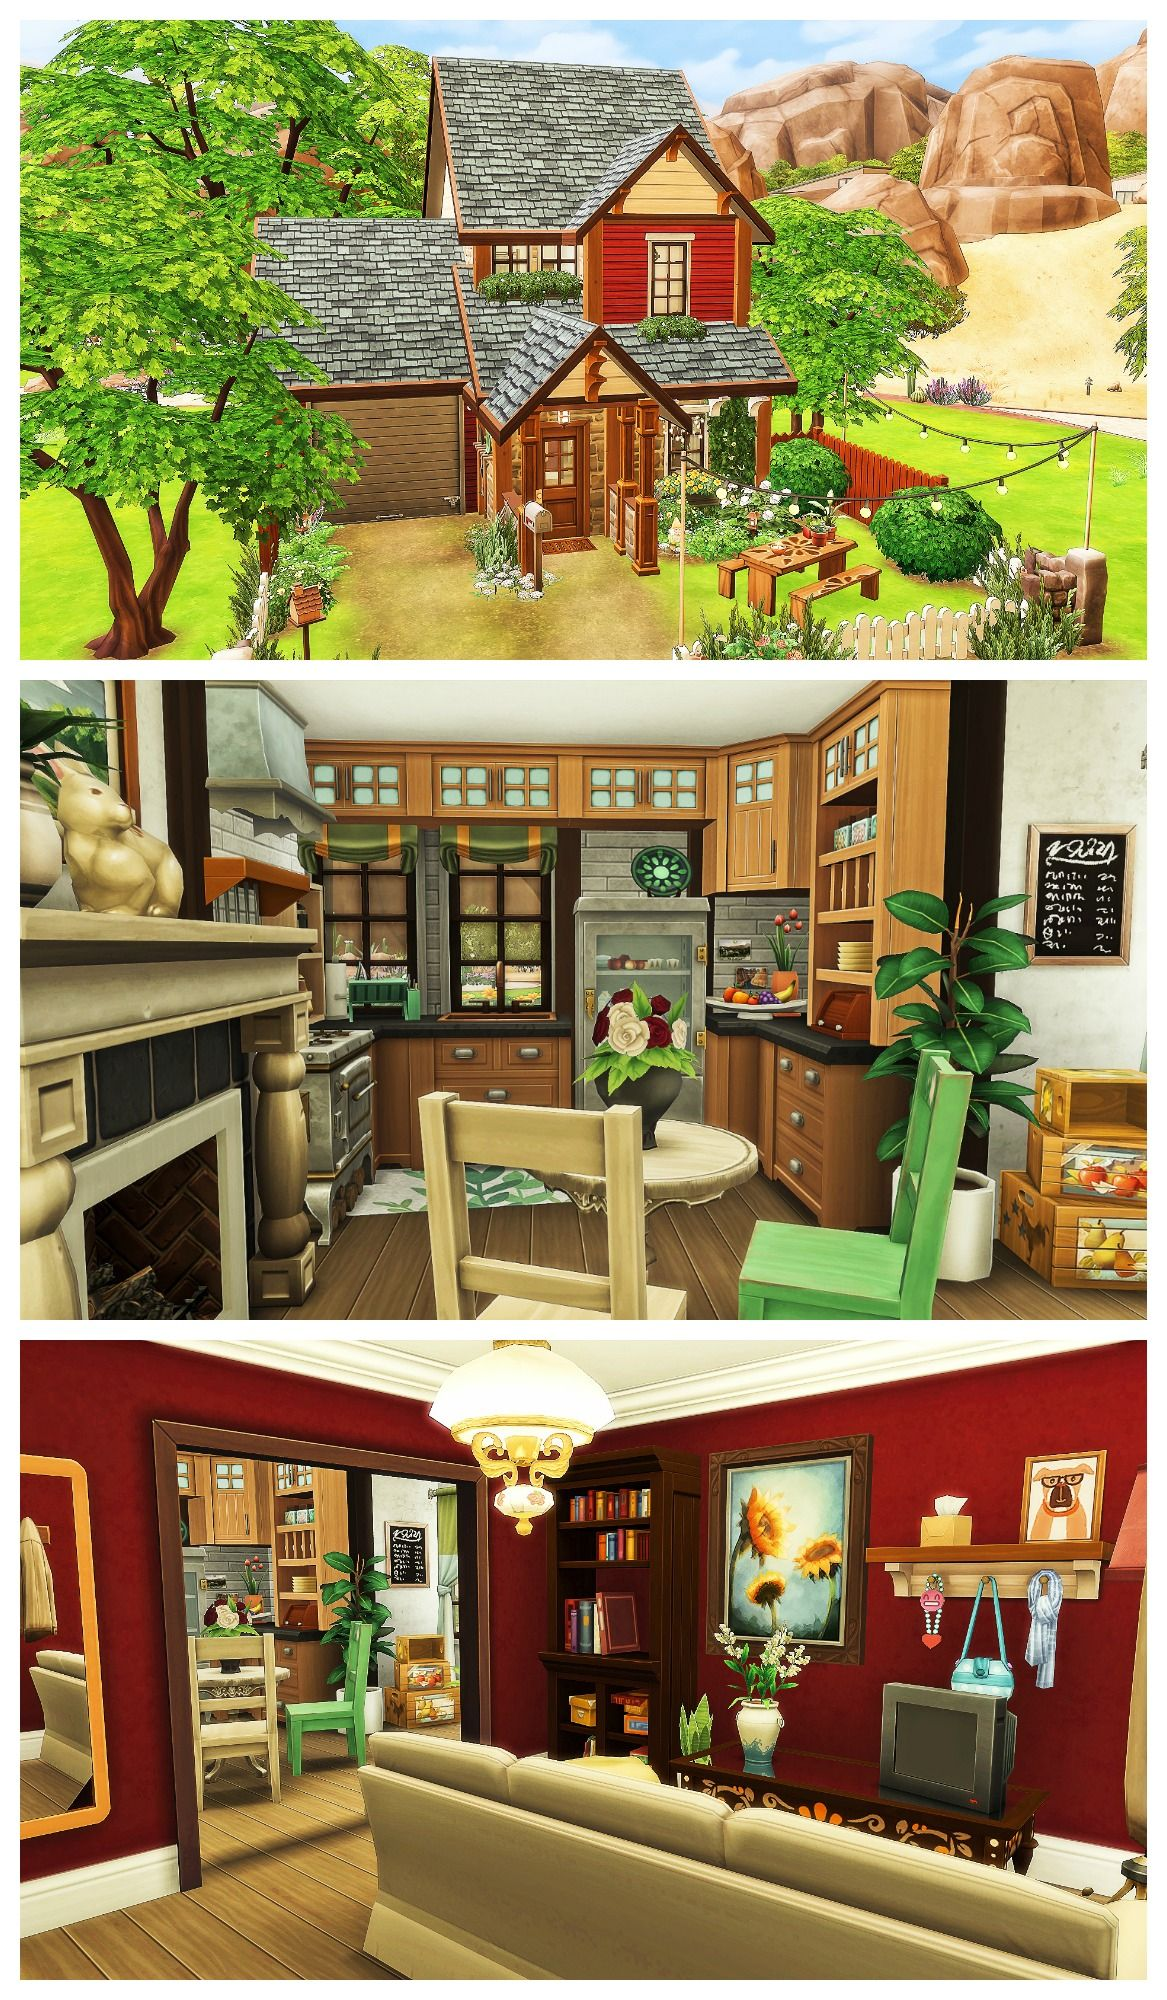 Sims 4 Cottage House Speed Build Download Sims House Sims Building Sims 4 House Plans